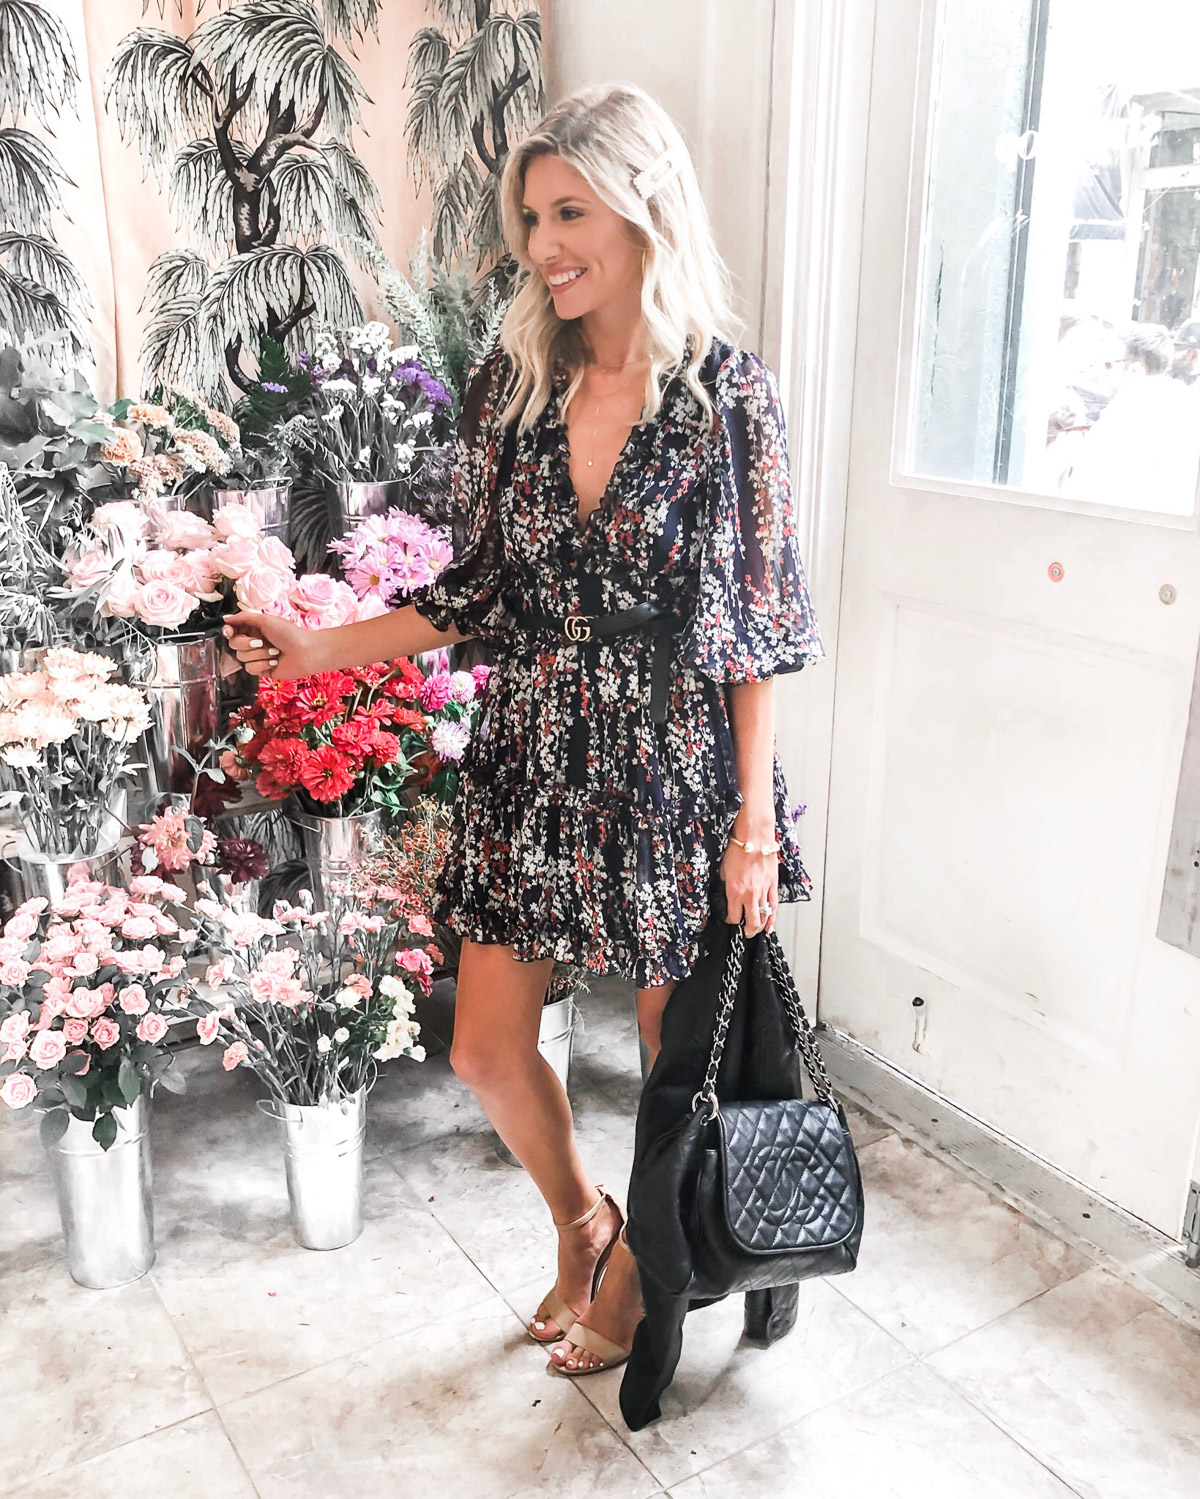 shopbop pop up with tezza wearing vici